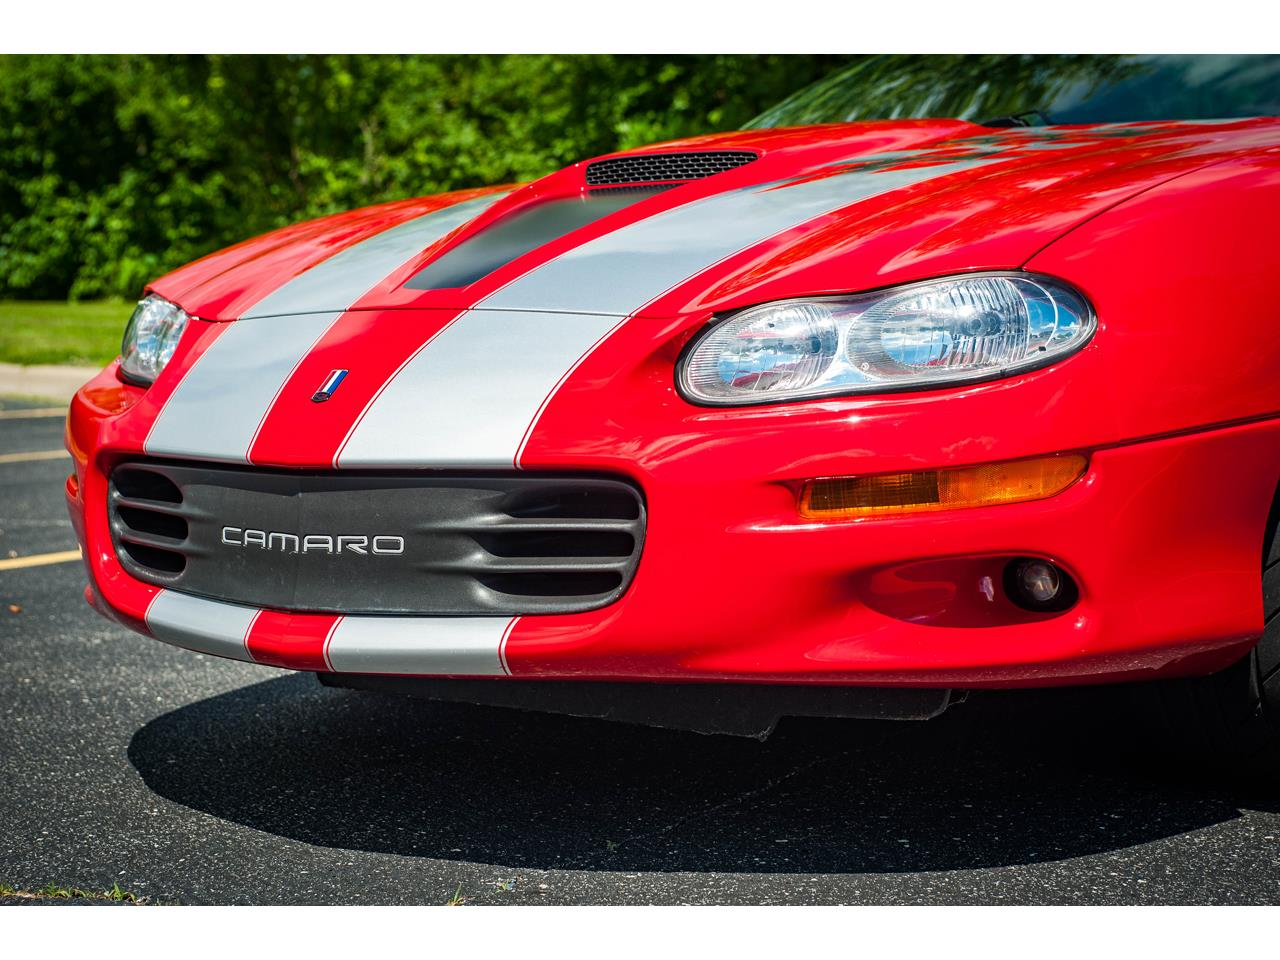 Large Picture of 2002 Chevrolet Camaro located in Illinois - QB9Z